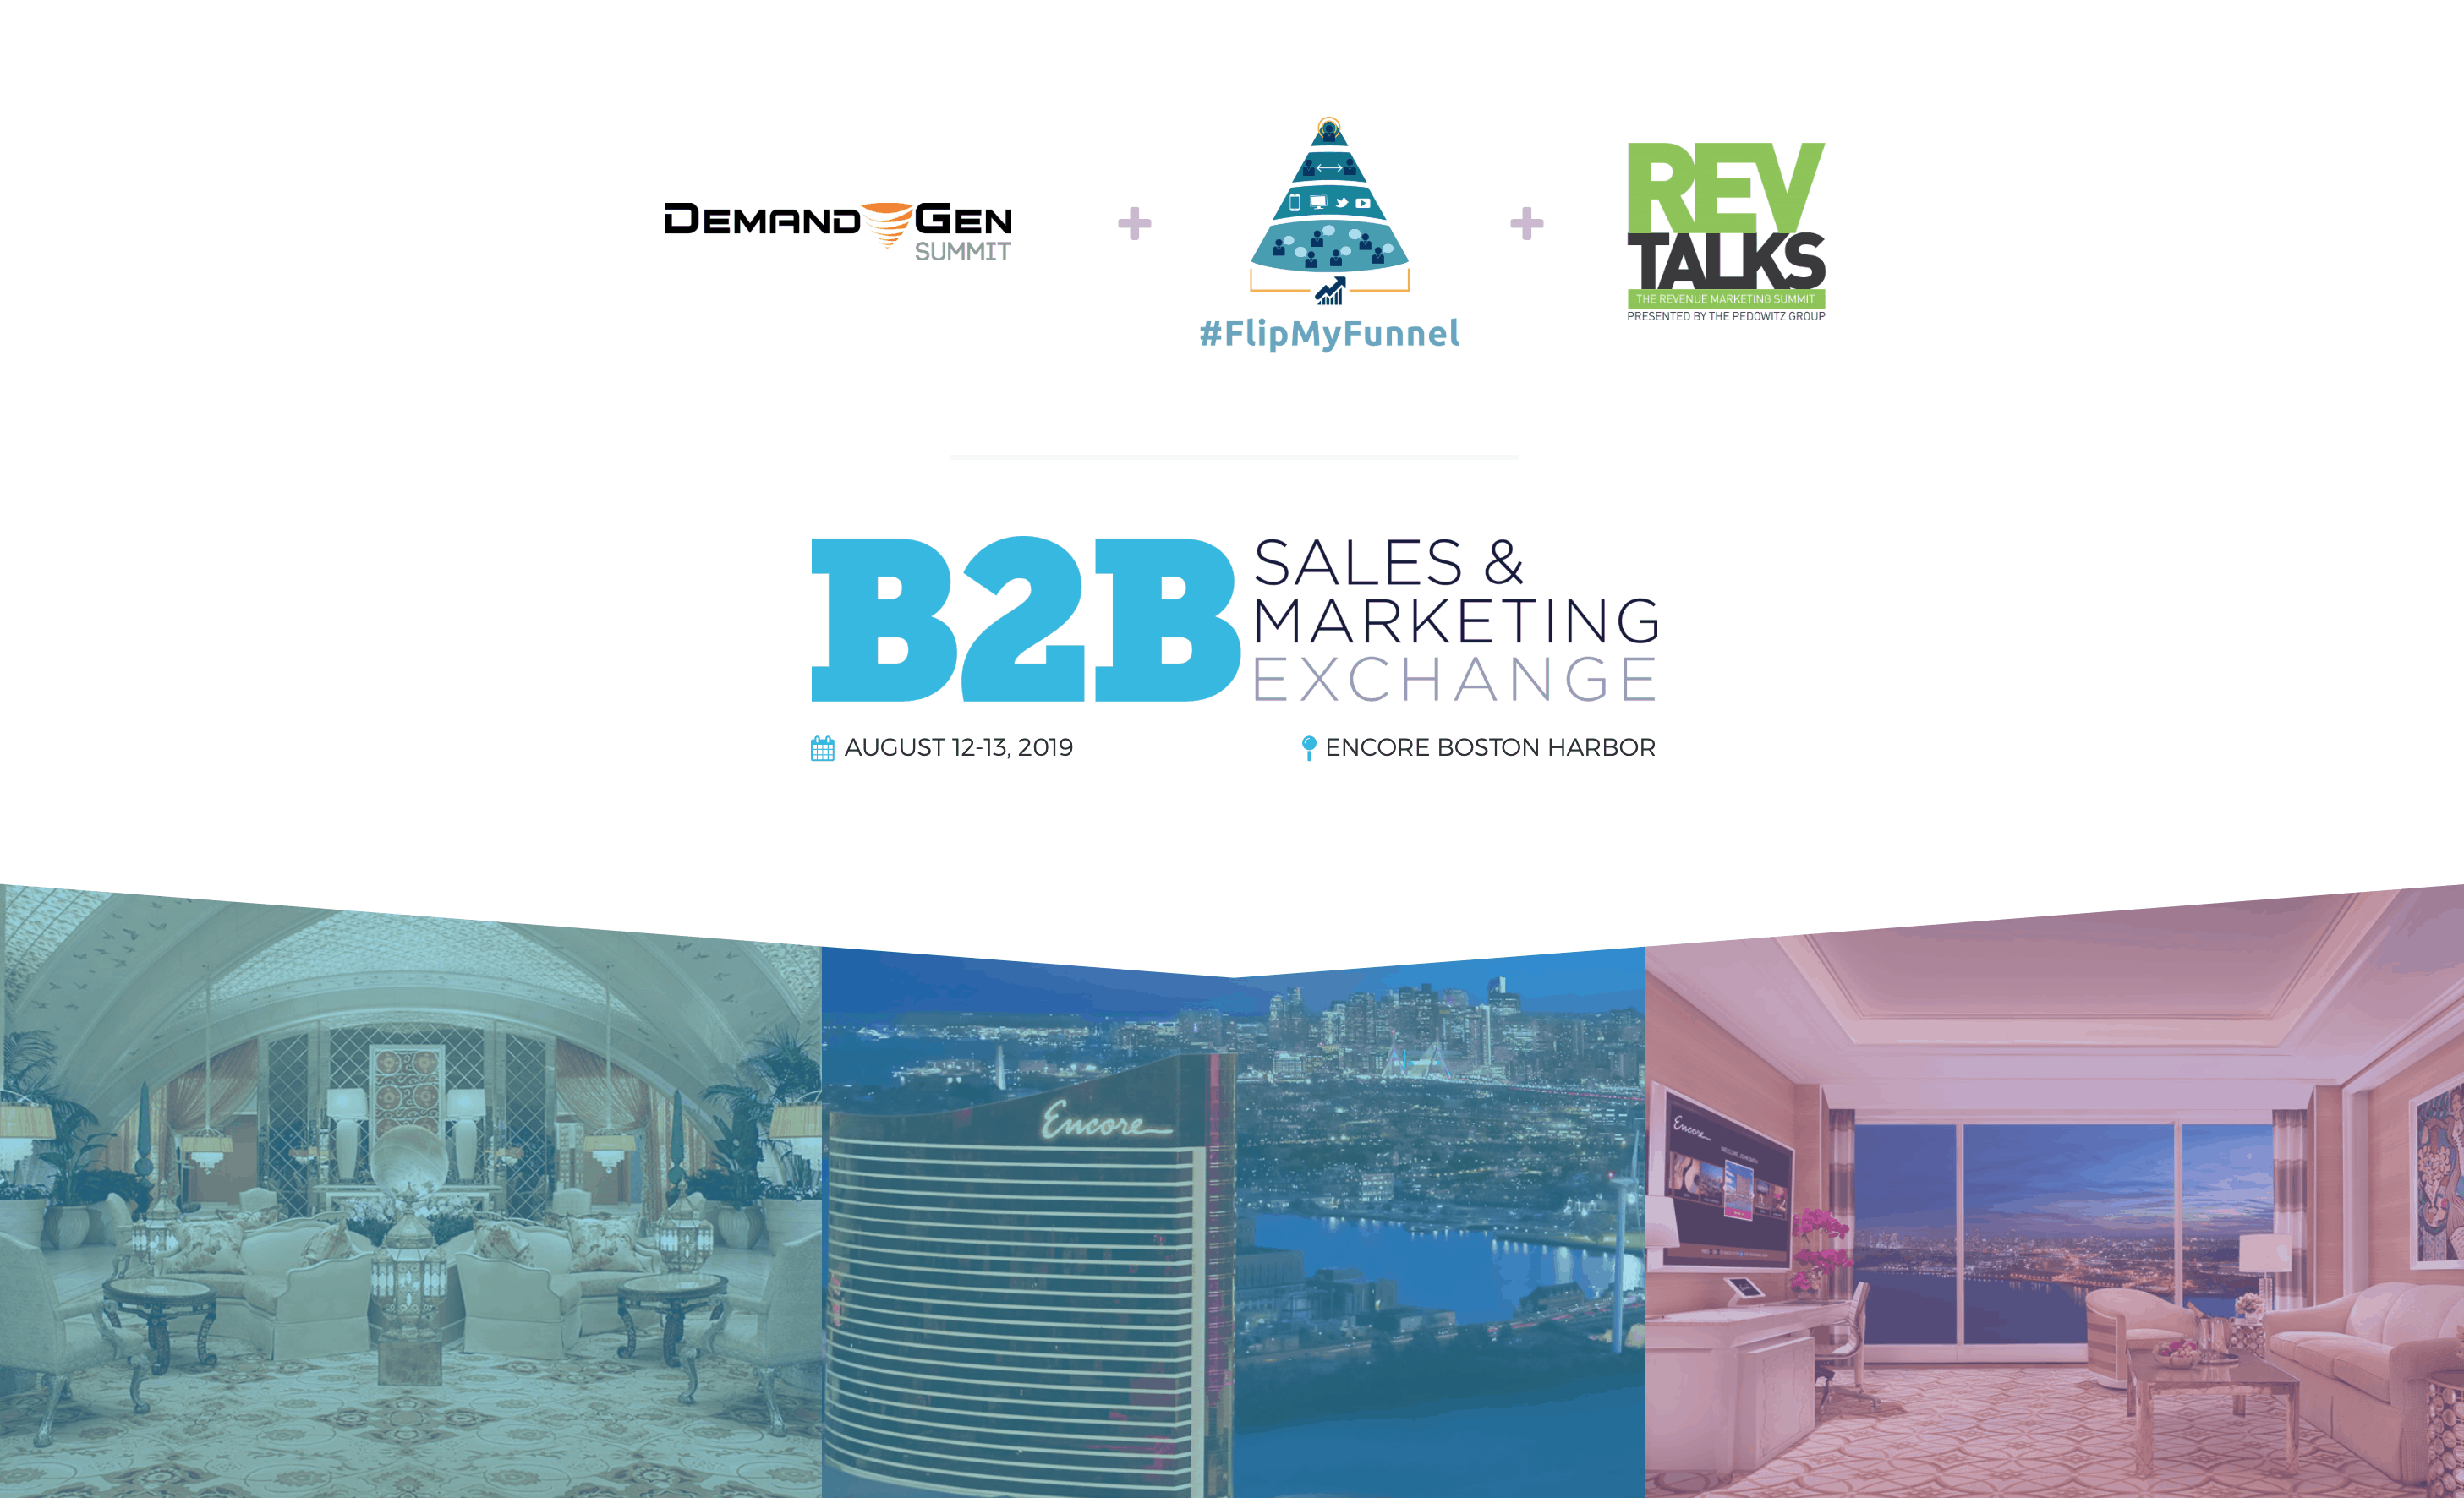 B2B Sales & Marketing Exchange | August 12-13, 2019 | Encore Boston